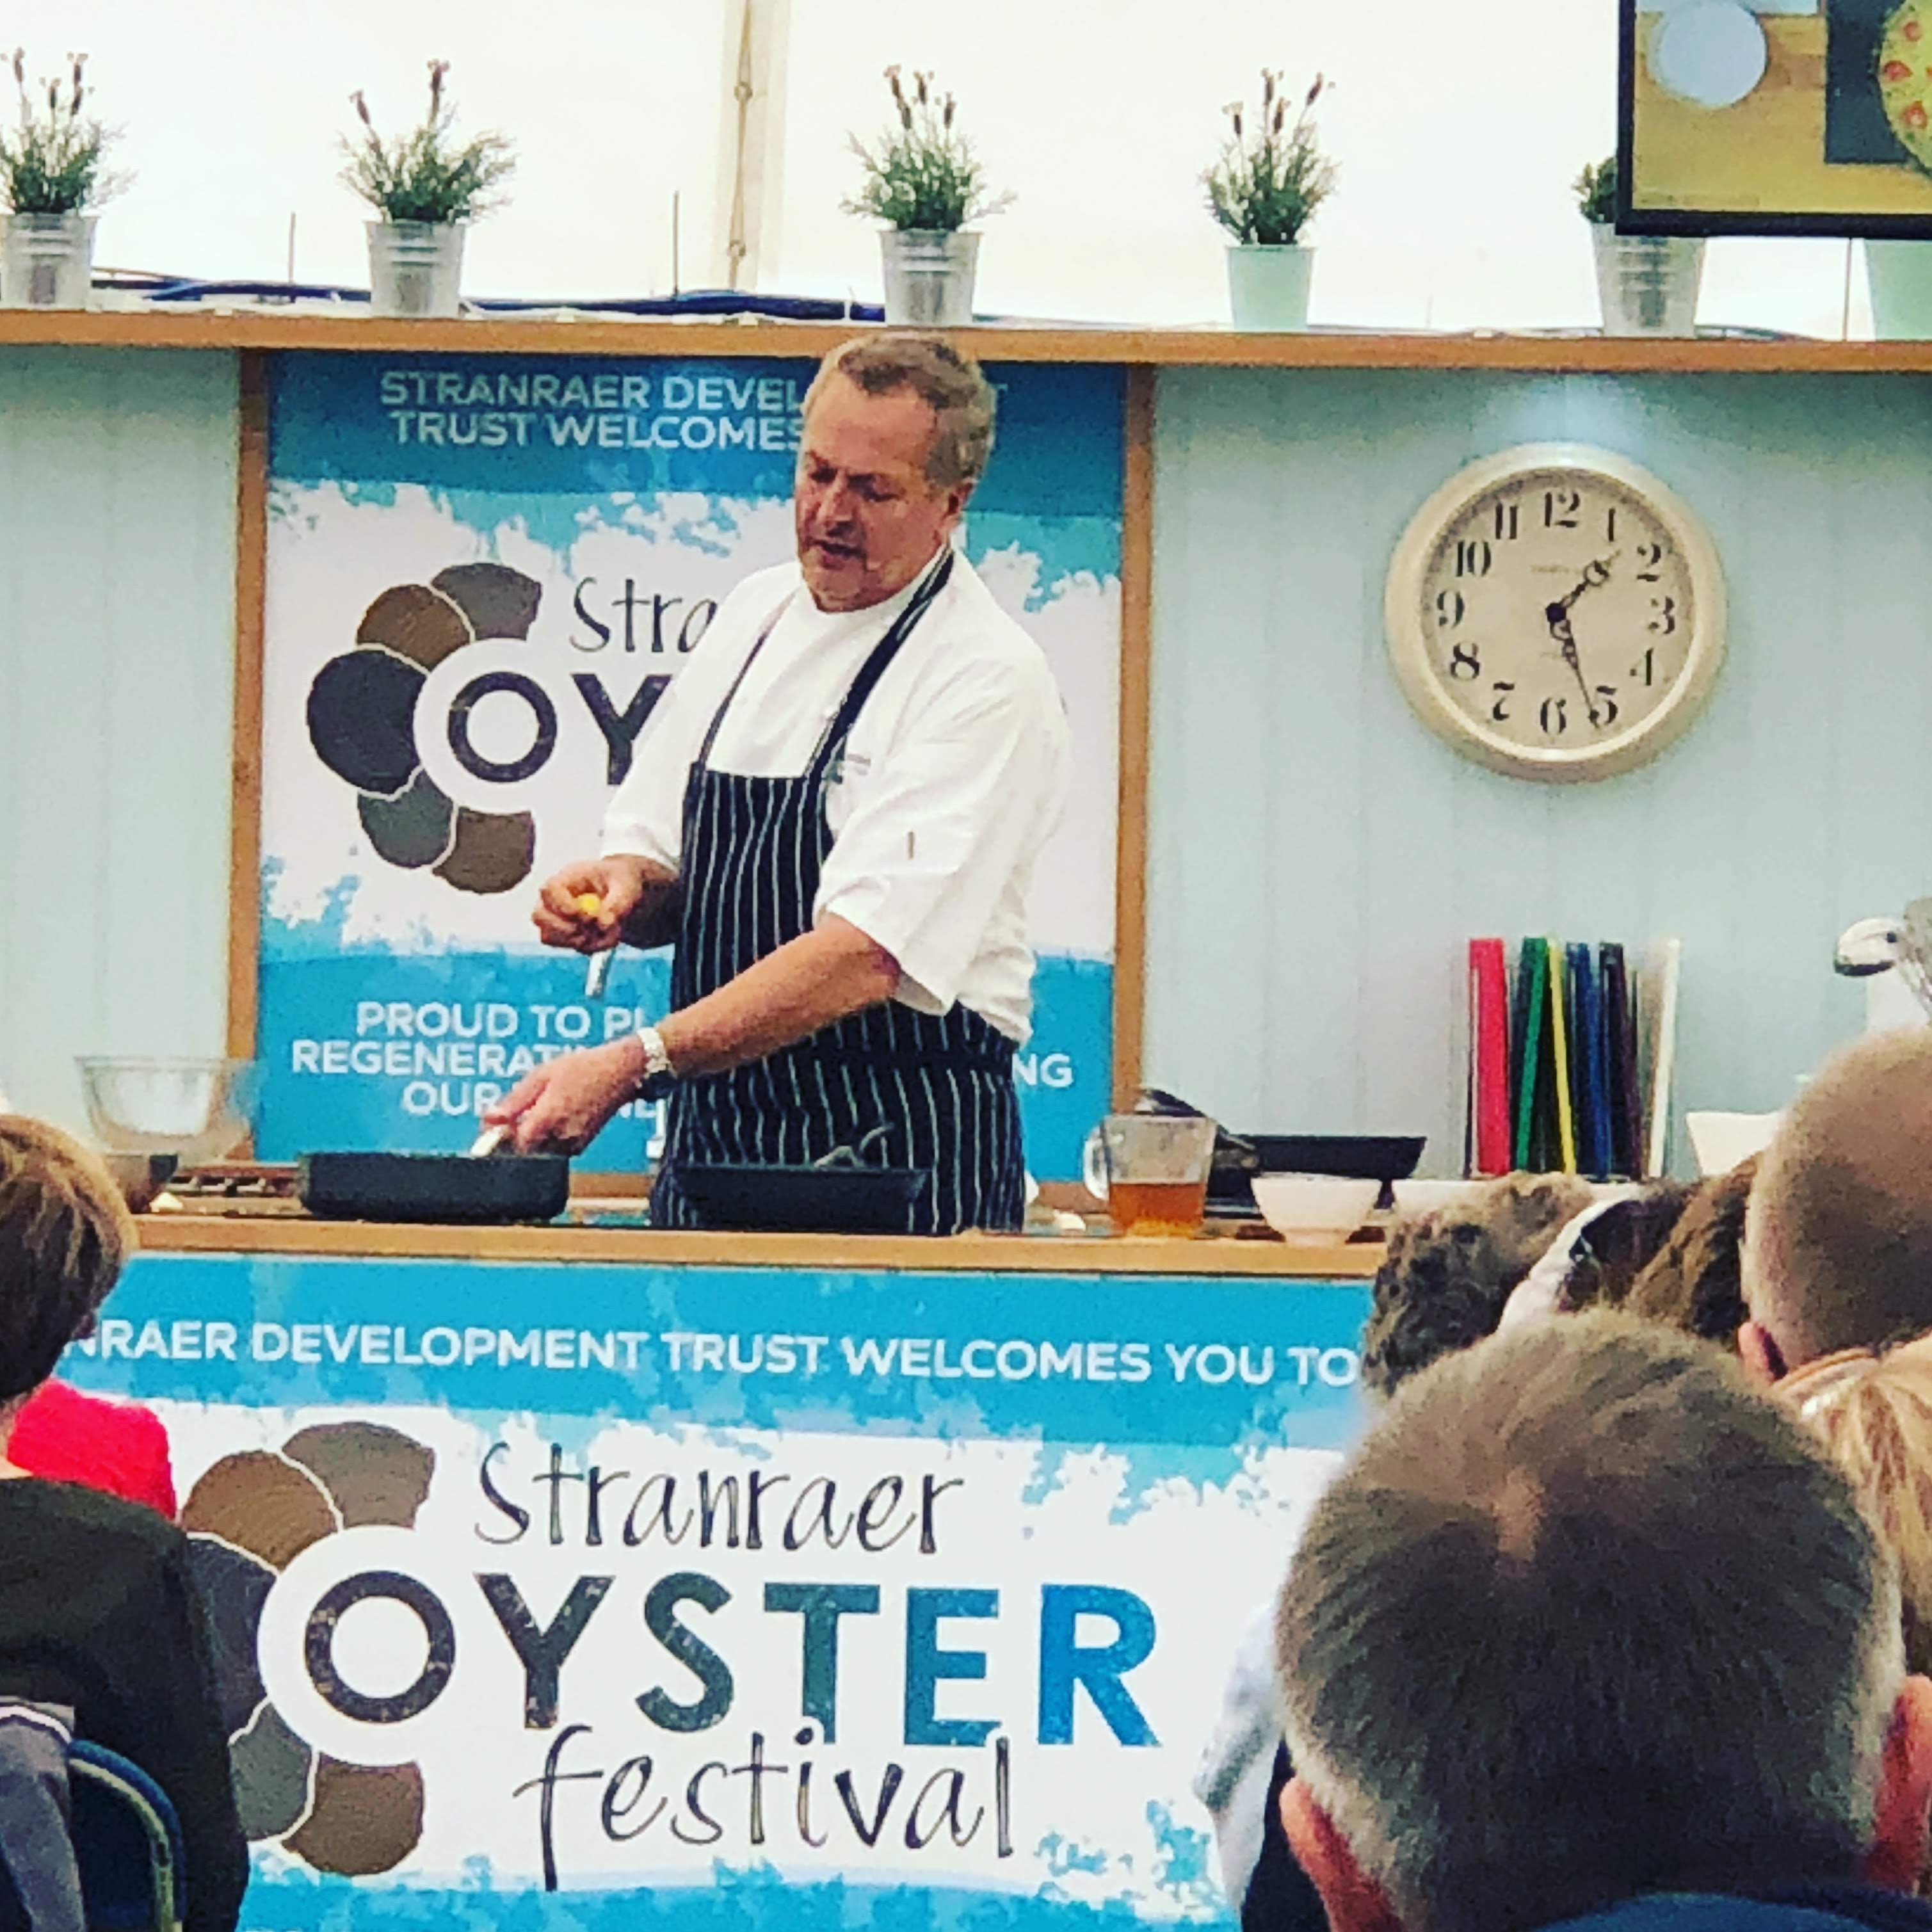 Accommodation for Stranraer Oyster Festival and the Wigtown Book Festival